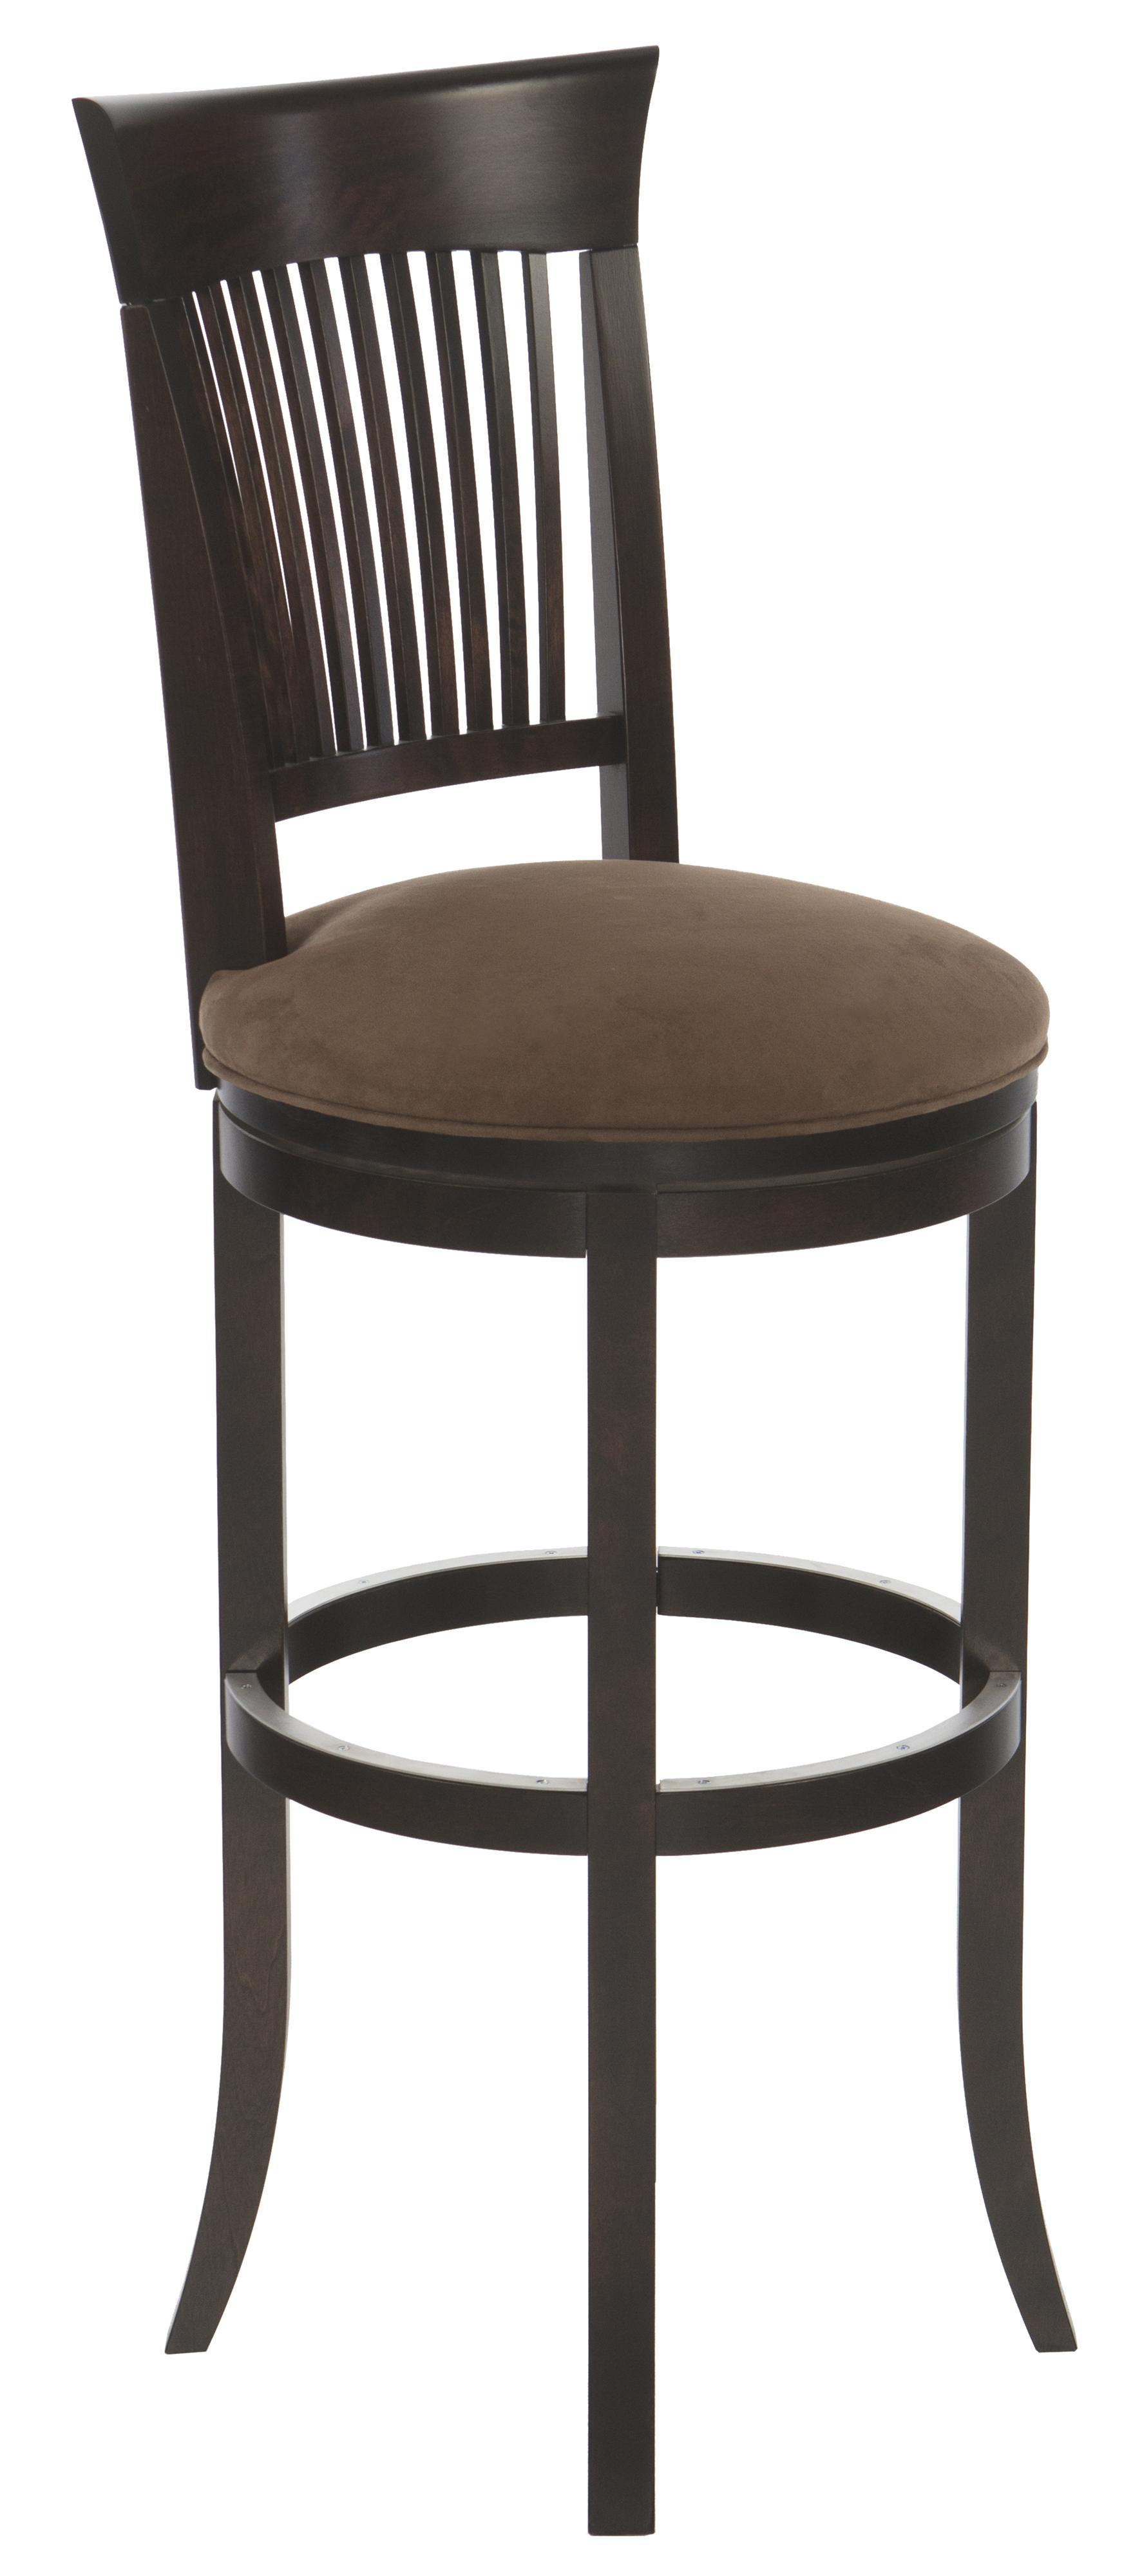 Canadel Bar Stools Customizable 34 Quot Upholstered Swivel